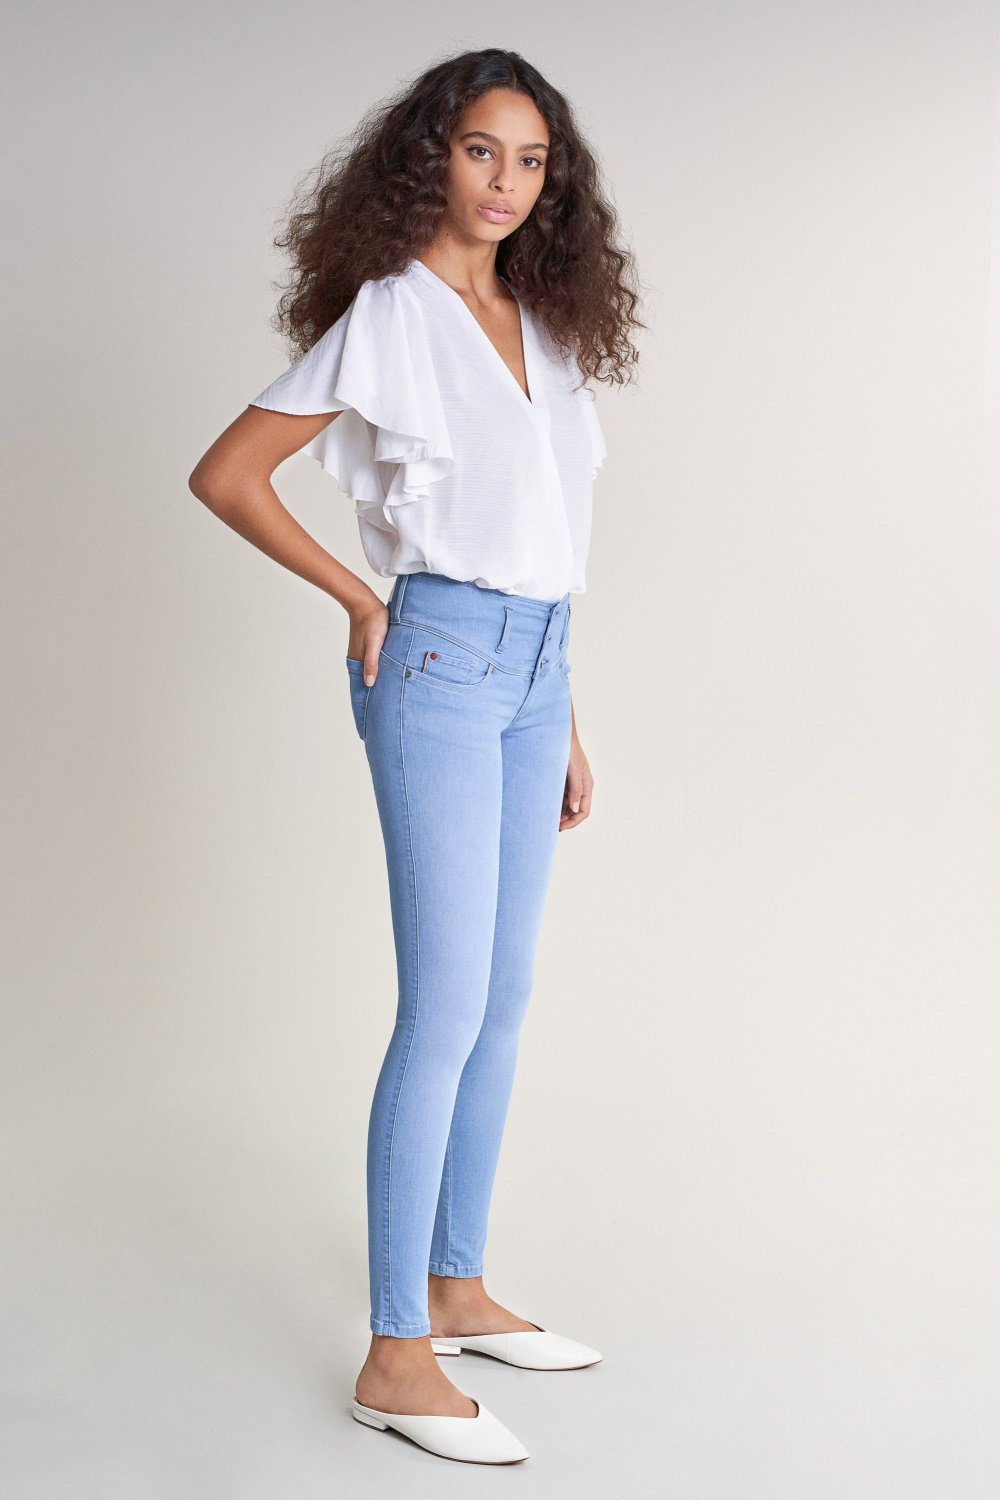 Jeans Mystery Push Up, Skinny, in hellem Denim - Salsa